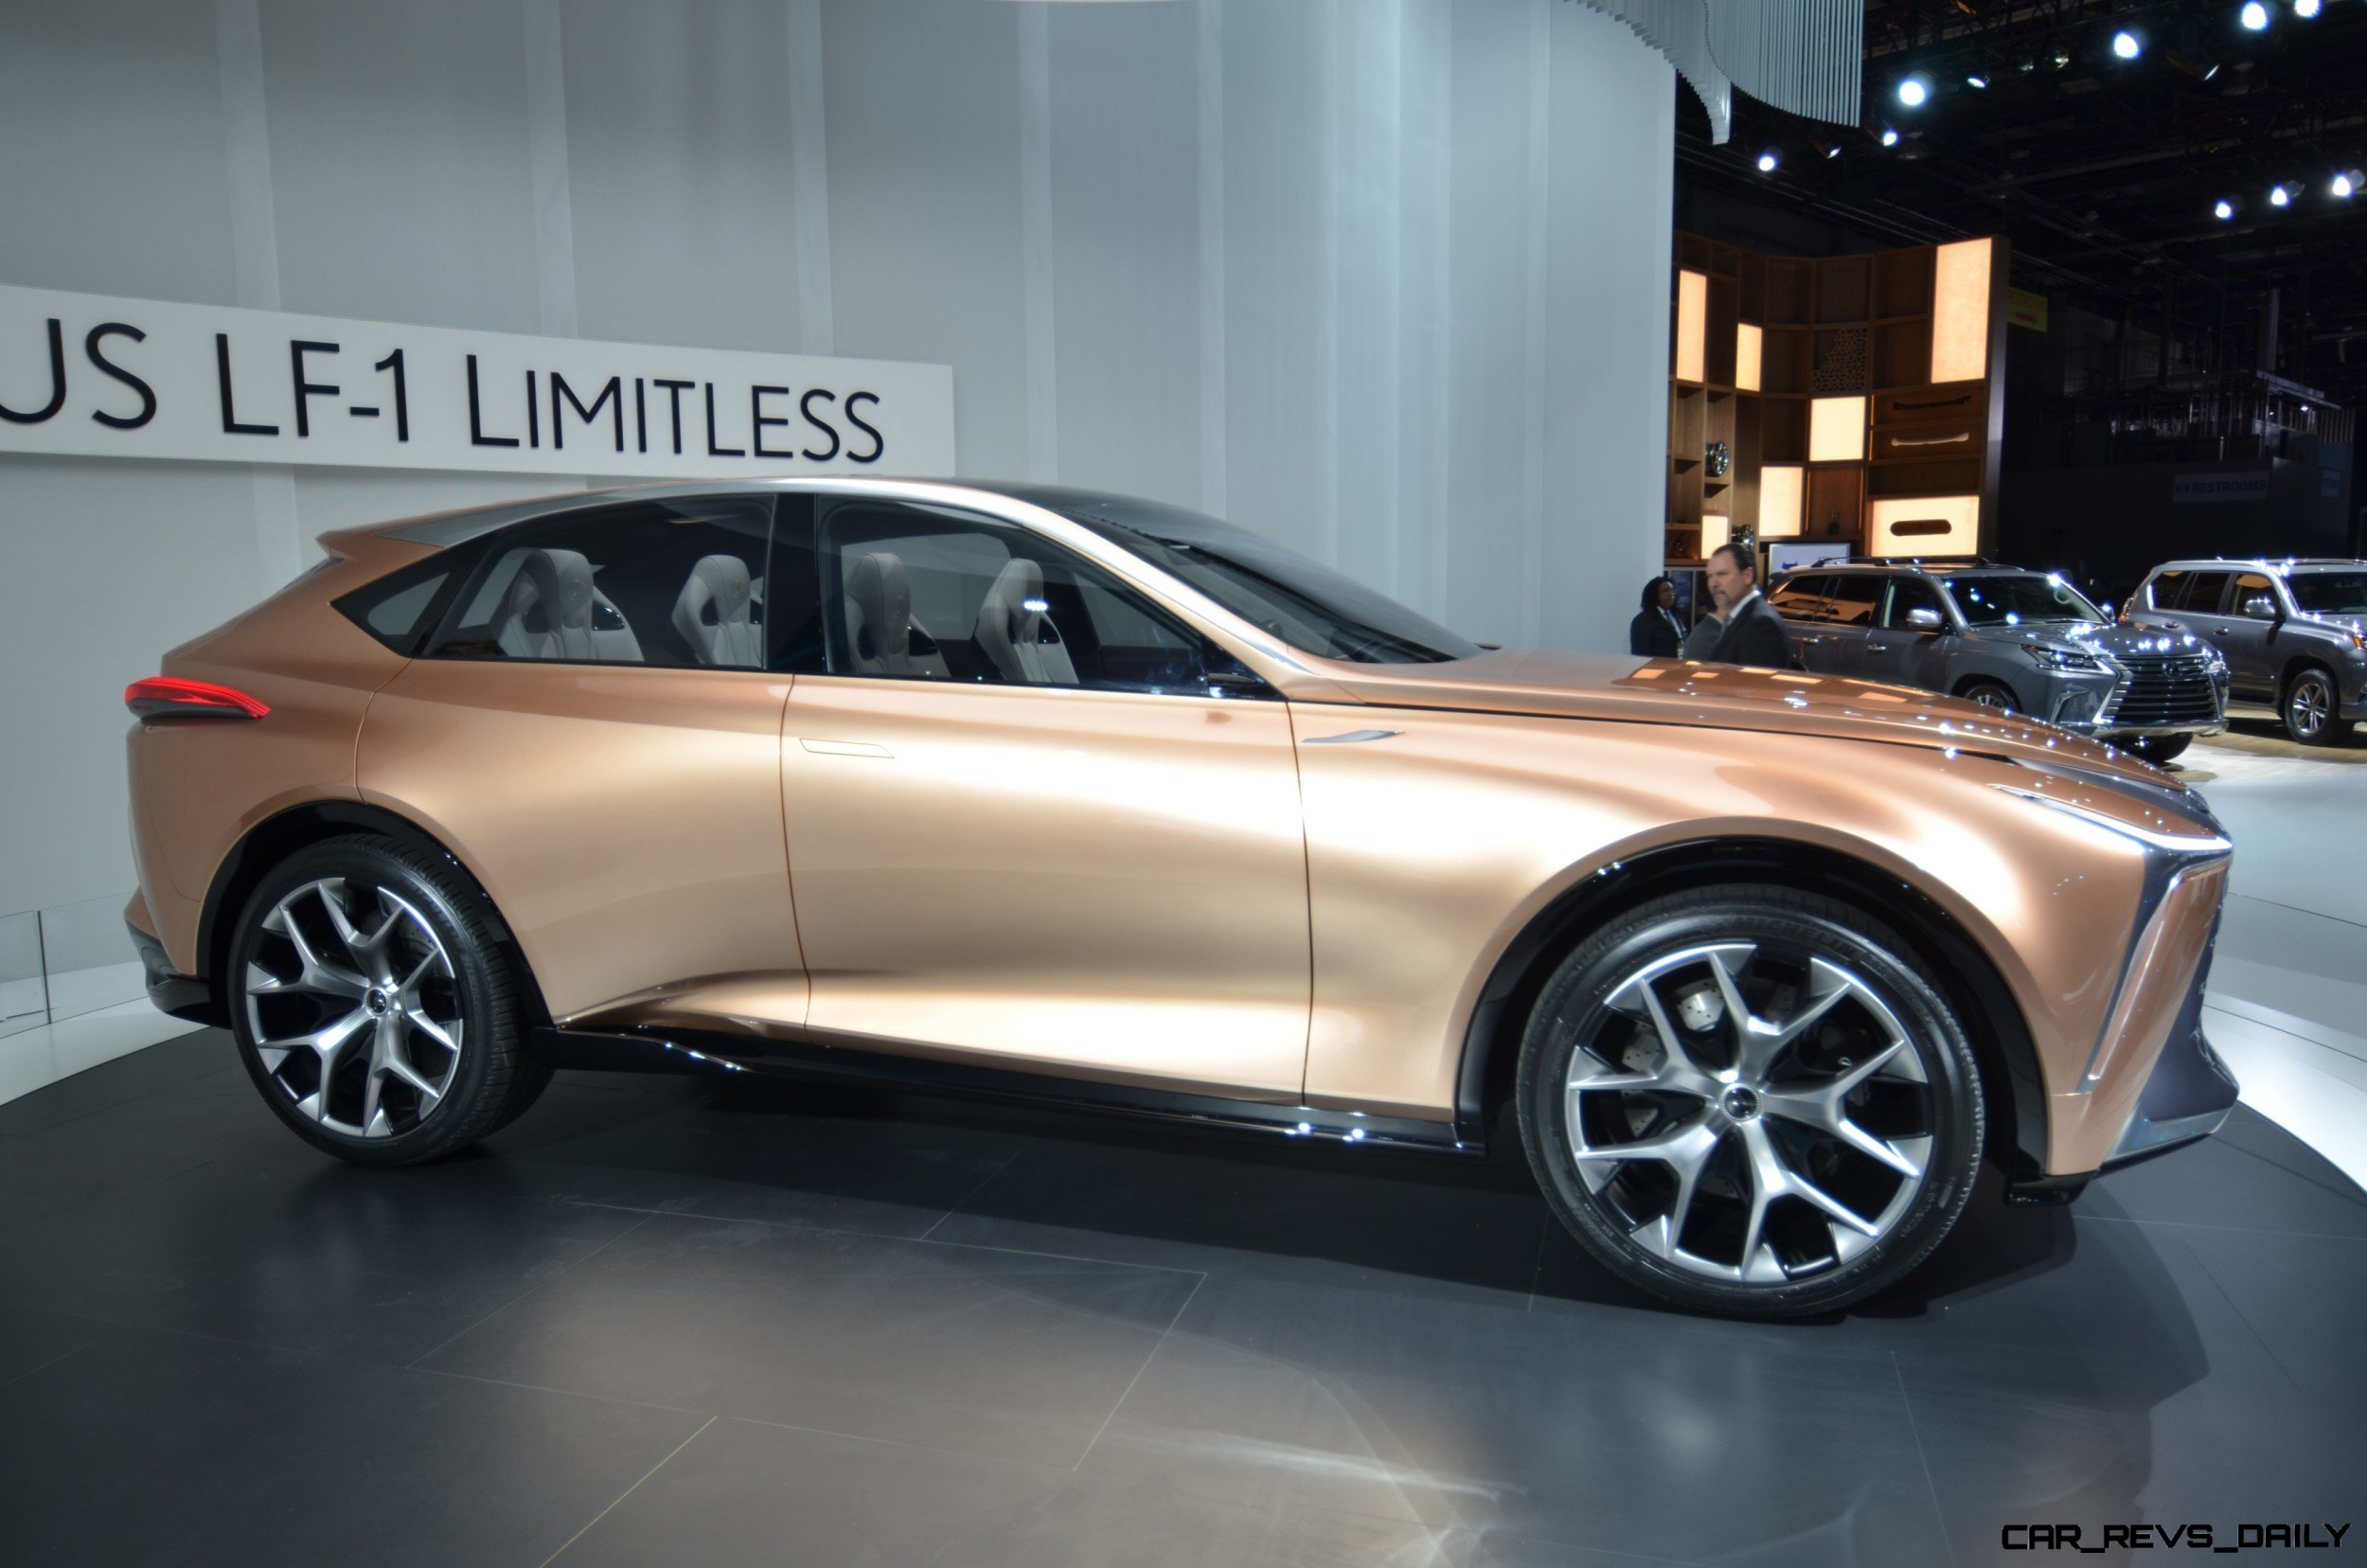 naias 2018 debut lexus lf 1 limitless concept gs sized f suv of future car shopping. Black Bedroom Furniture Sets. Home Design Ideas